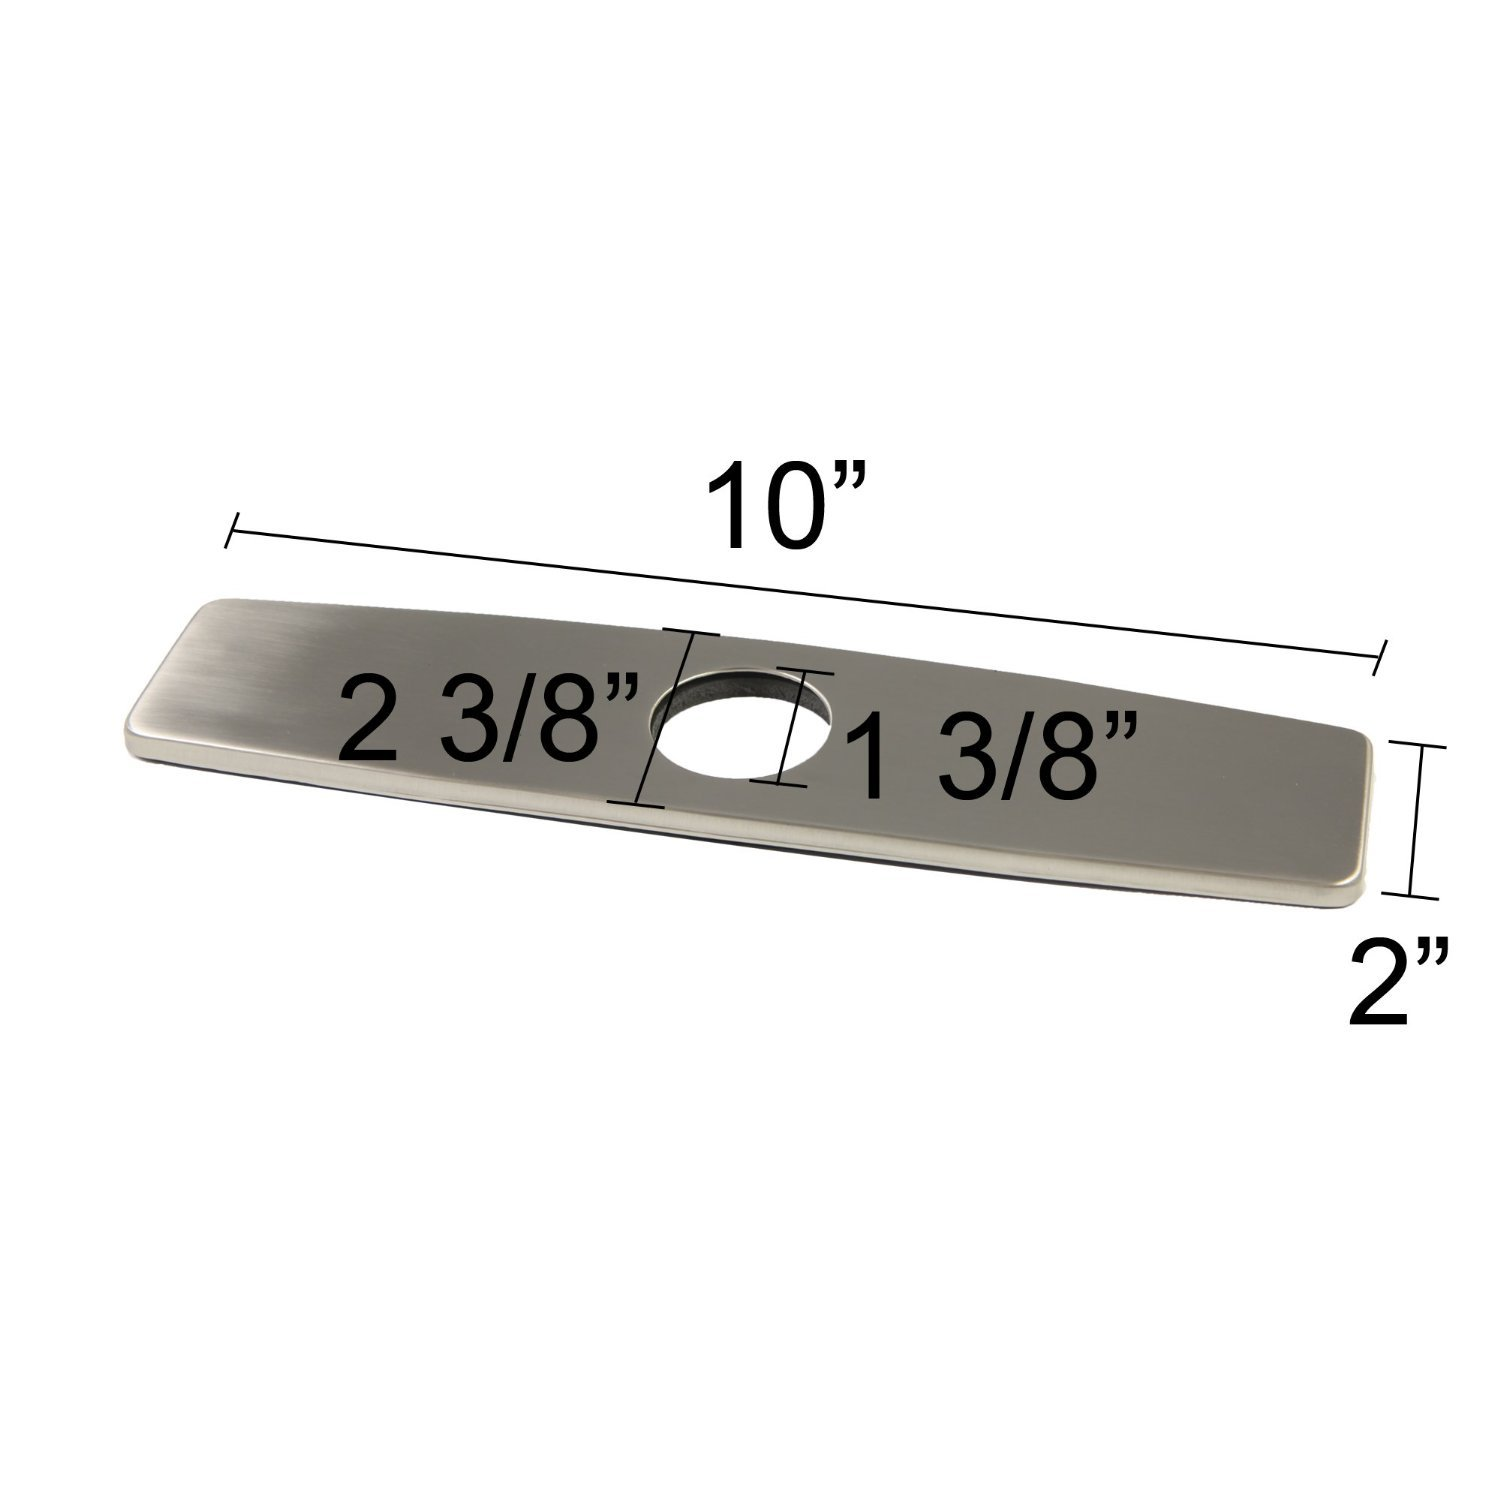 Luxice 10'' Kitchen and Bathroom Sink Faucet Hole Cover Deck Plate Escutcheon Brushed Nickel